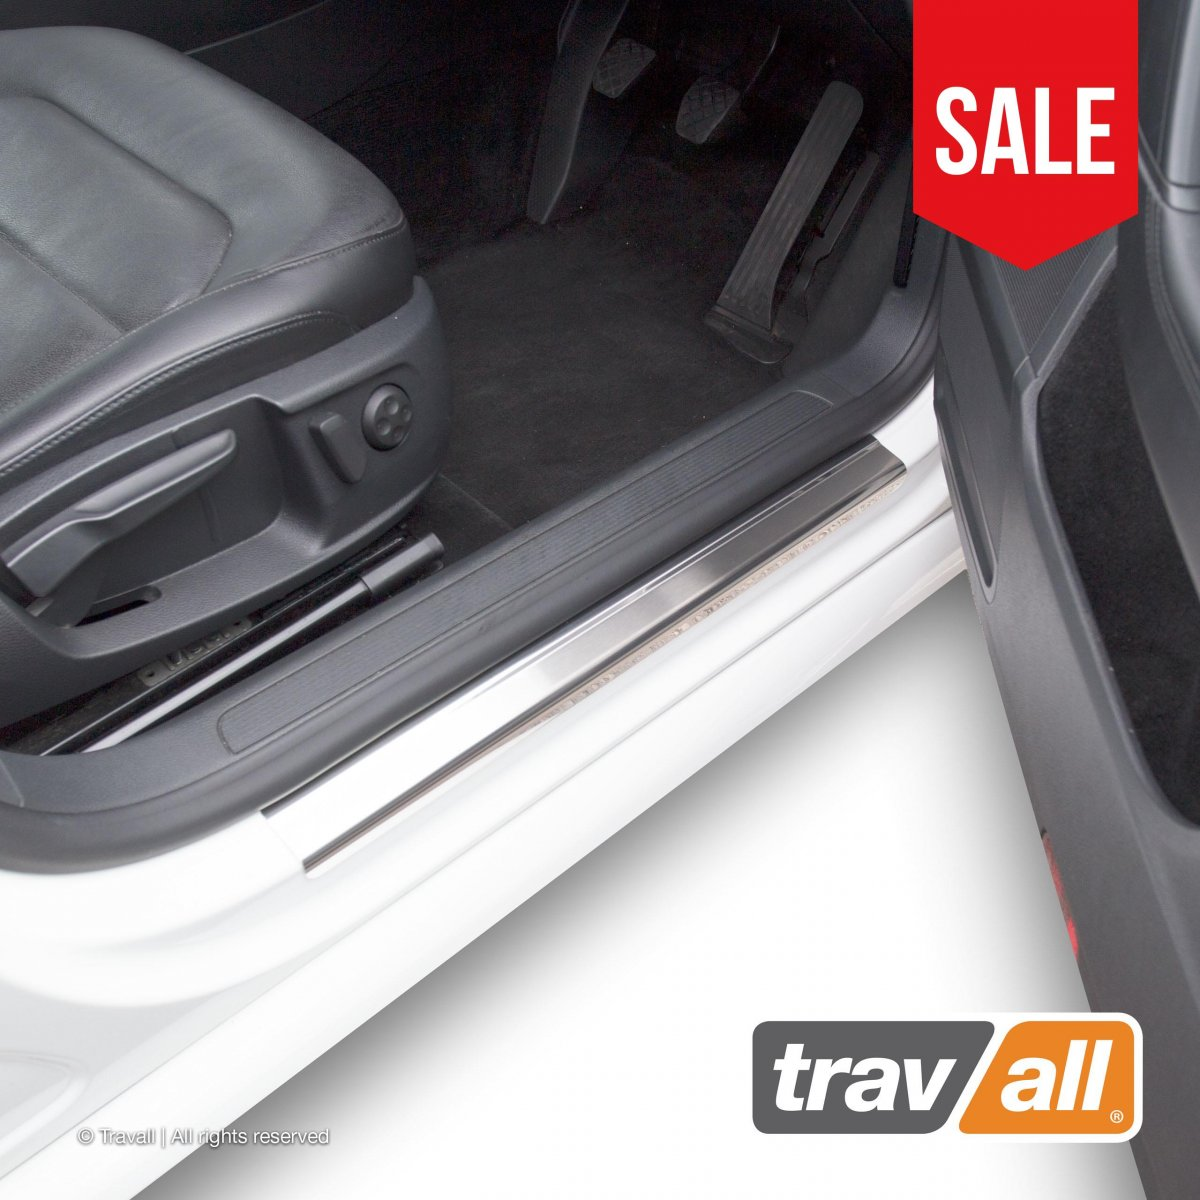 Travall® Sillguards for Volkswagen Passat Alltrack (2012-2015) / Estate/Saloon (2005-2015)